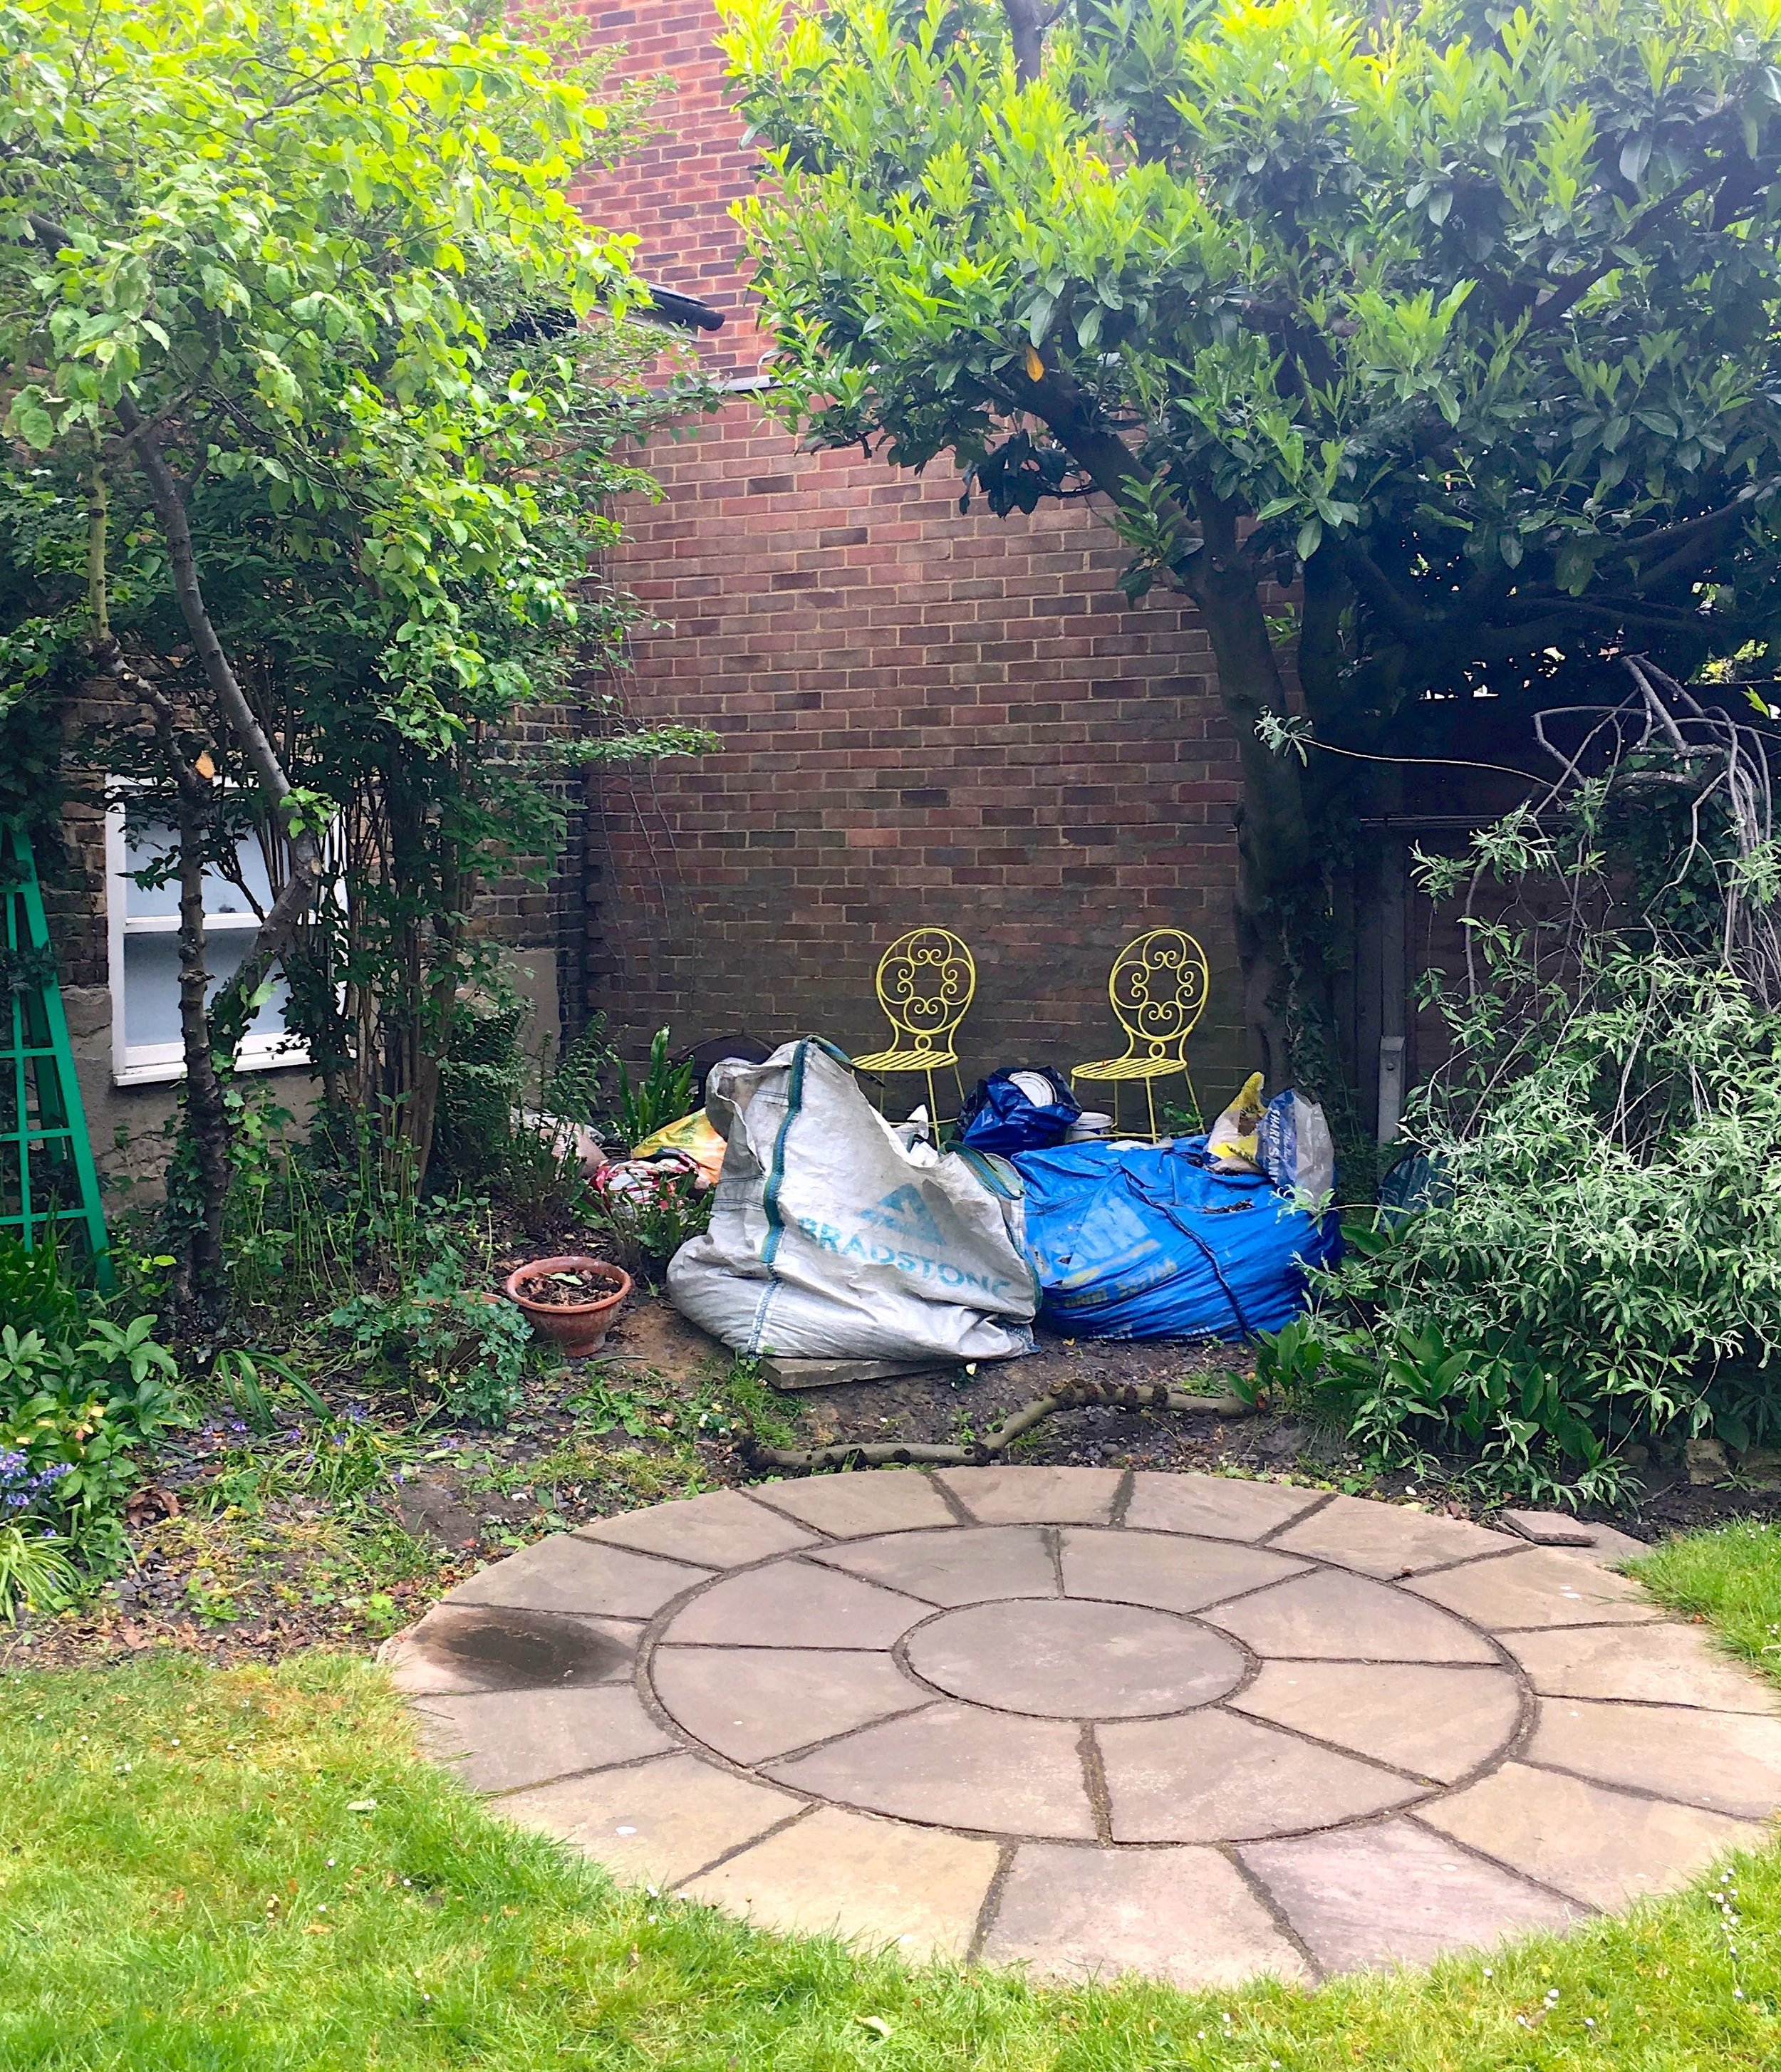 THIS IS THE PART OF OUR GARDEN ABOUT TO GET A REVAMP AND A NEW PURPOSE